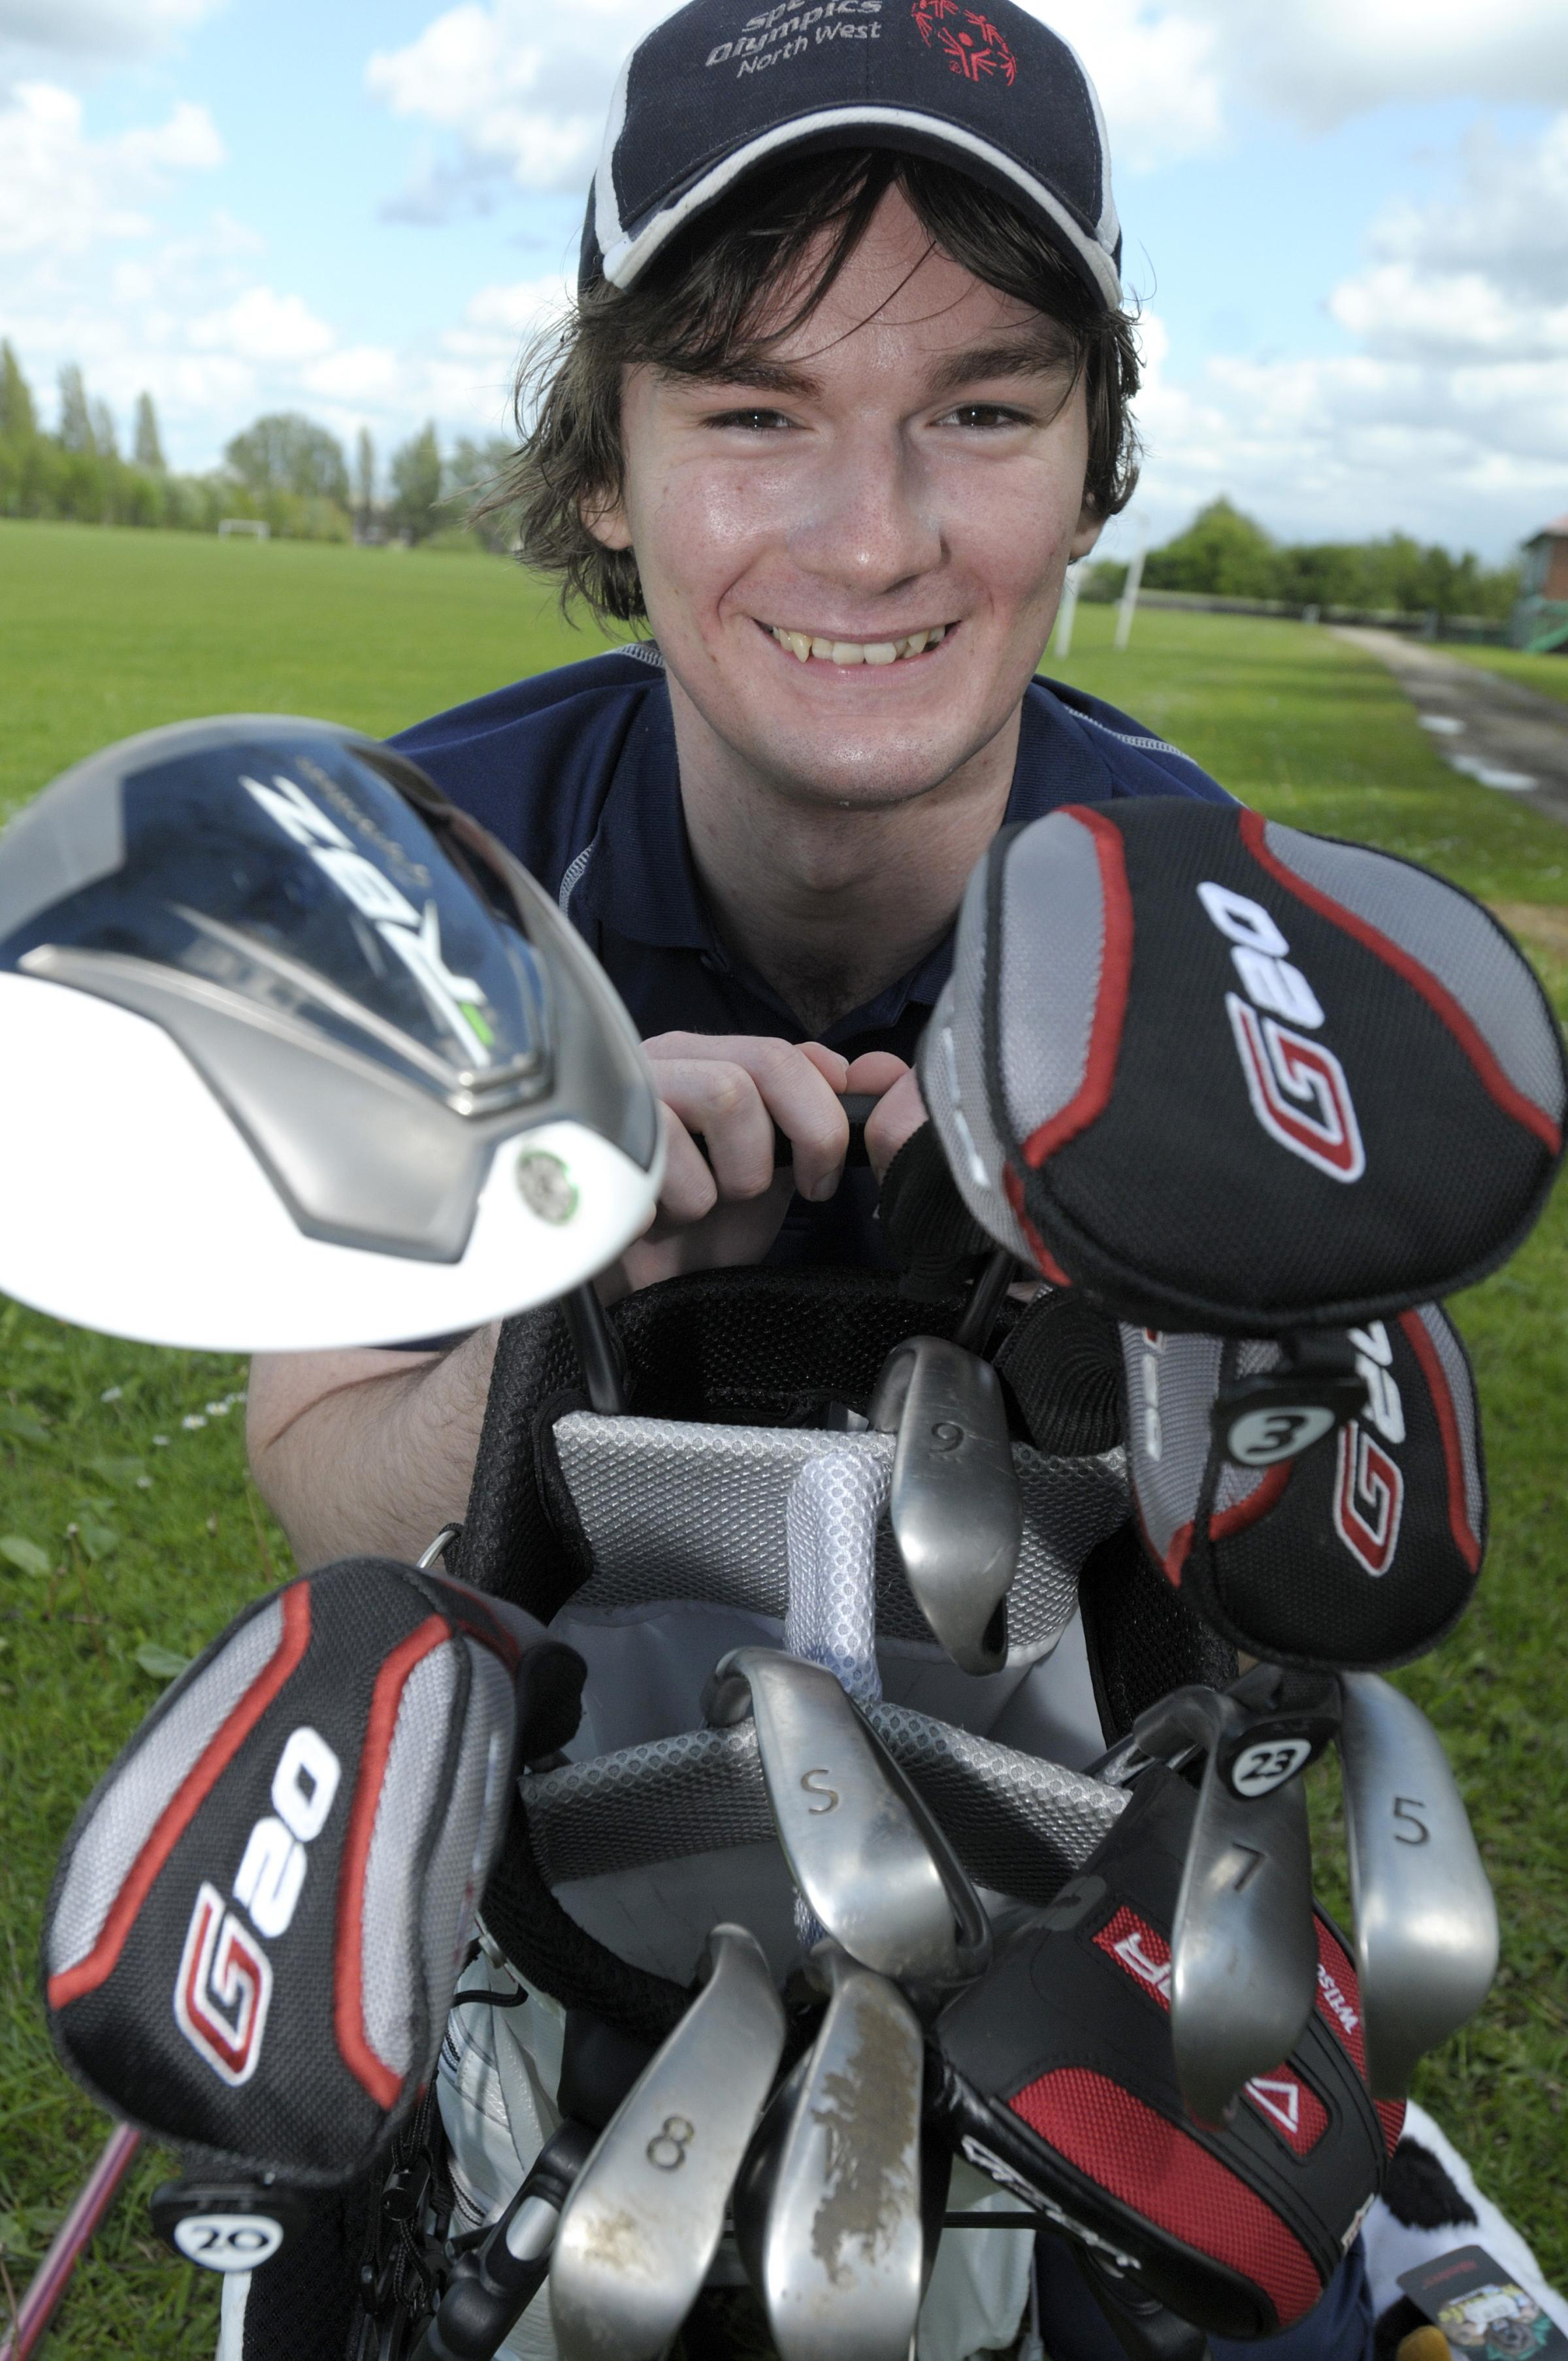 Widnes golfer chosen for Special Olympics World Summer Games